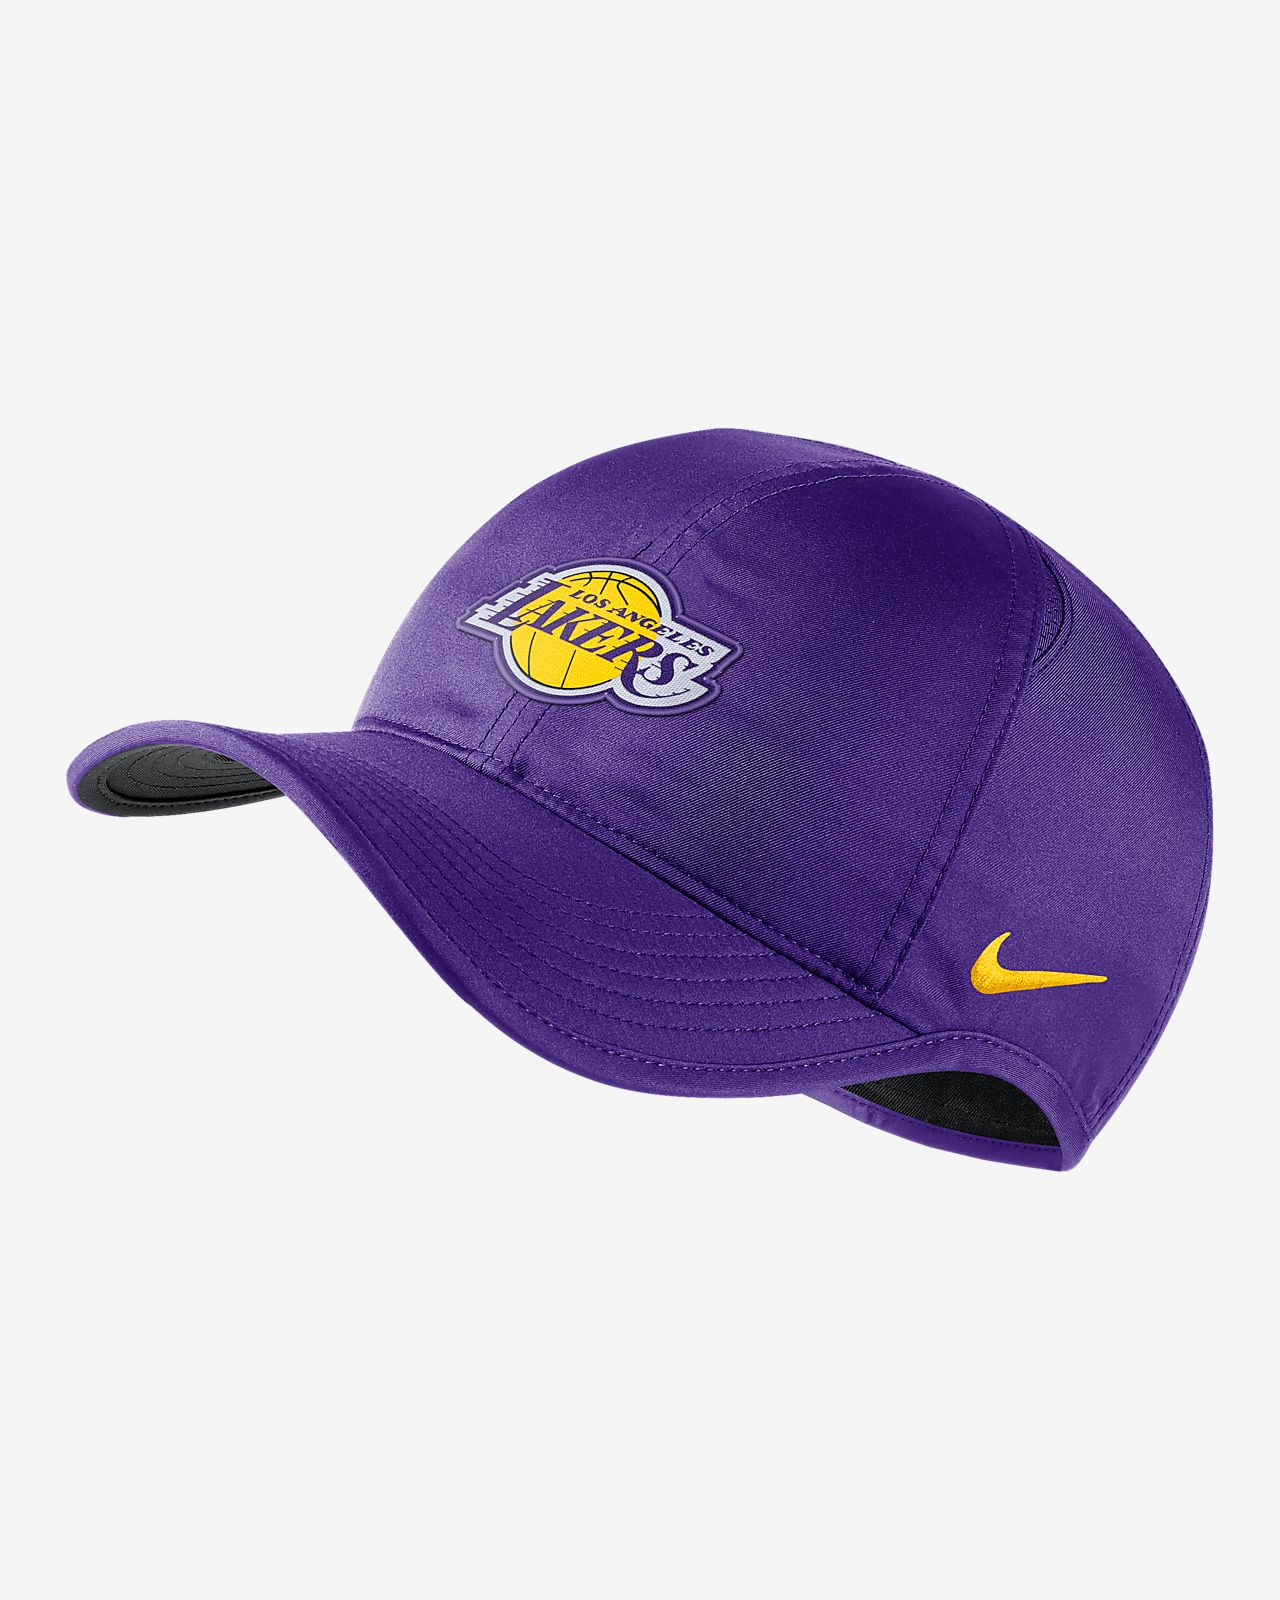 f5b0c5b056 Los Angeles Lakers Nike AeroBill Featherlight NBA Hat. Nike.com